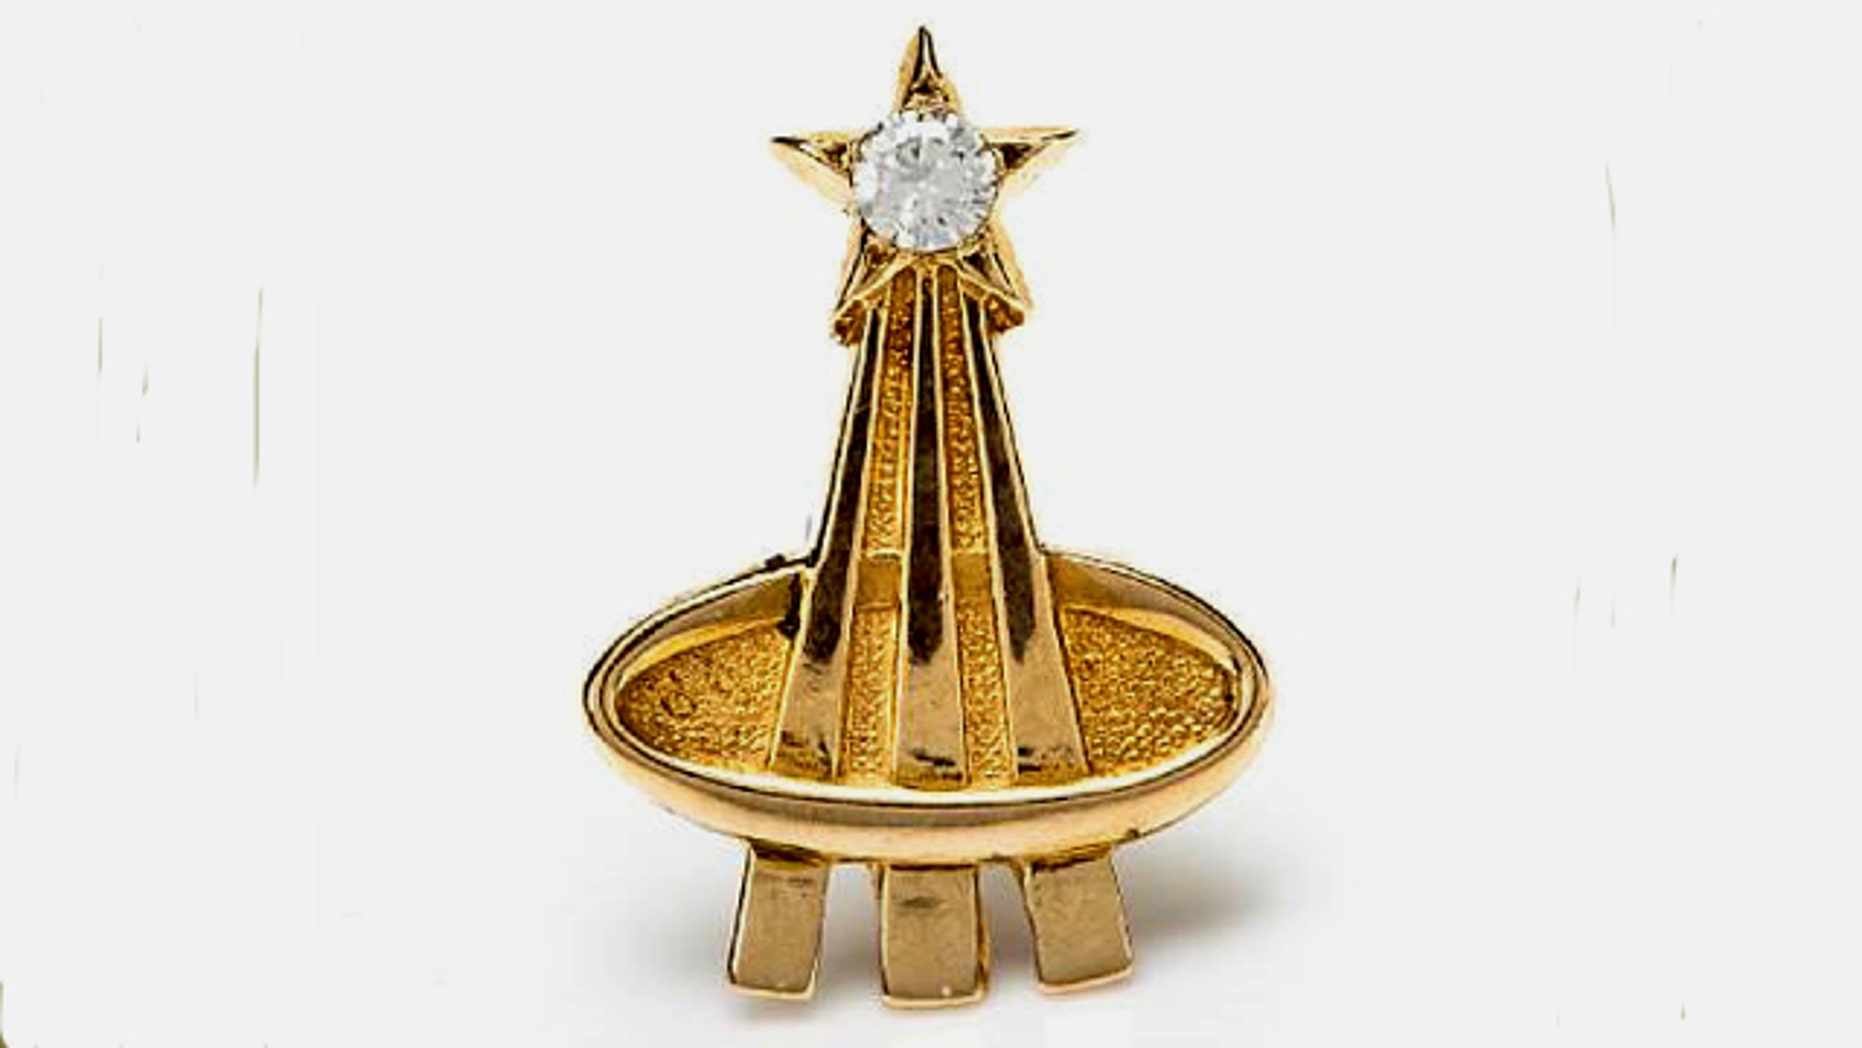 A diamond and gold pin given to Deke Slayton by the widows of the astronauts killed in the Apollo 1 fire.